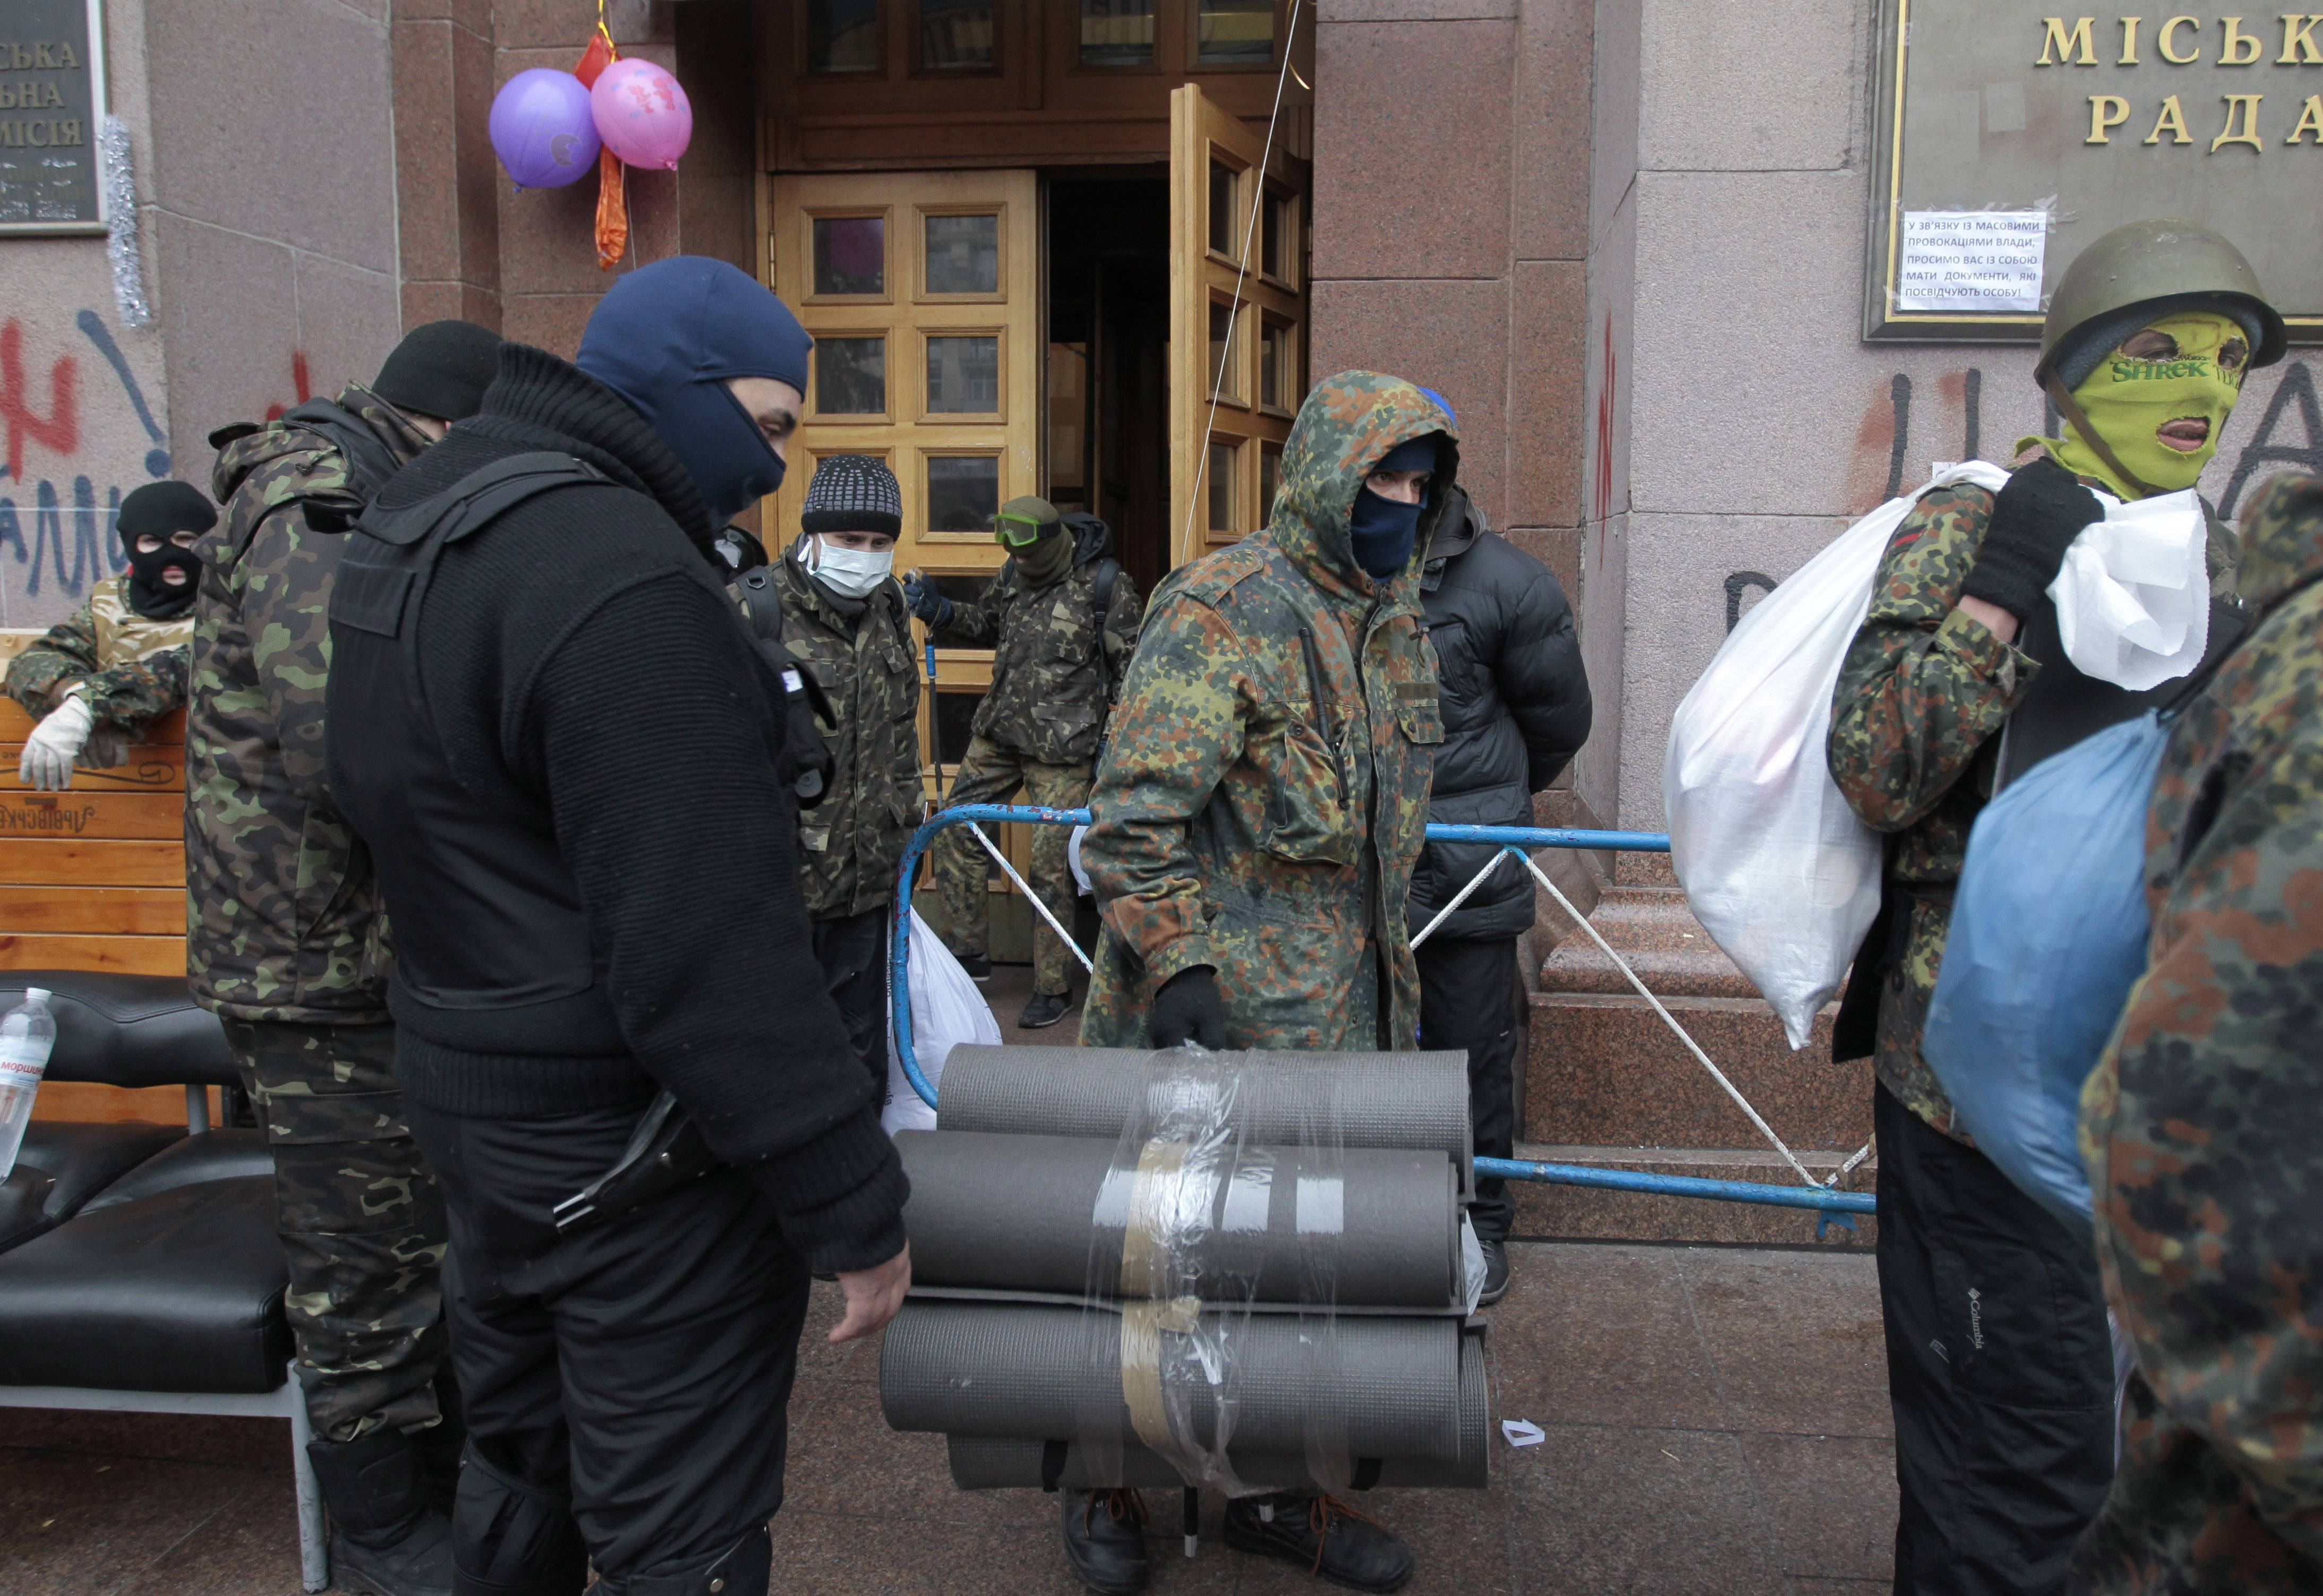 Ukrainian protesters end occupation of City Hall